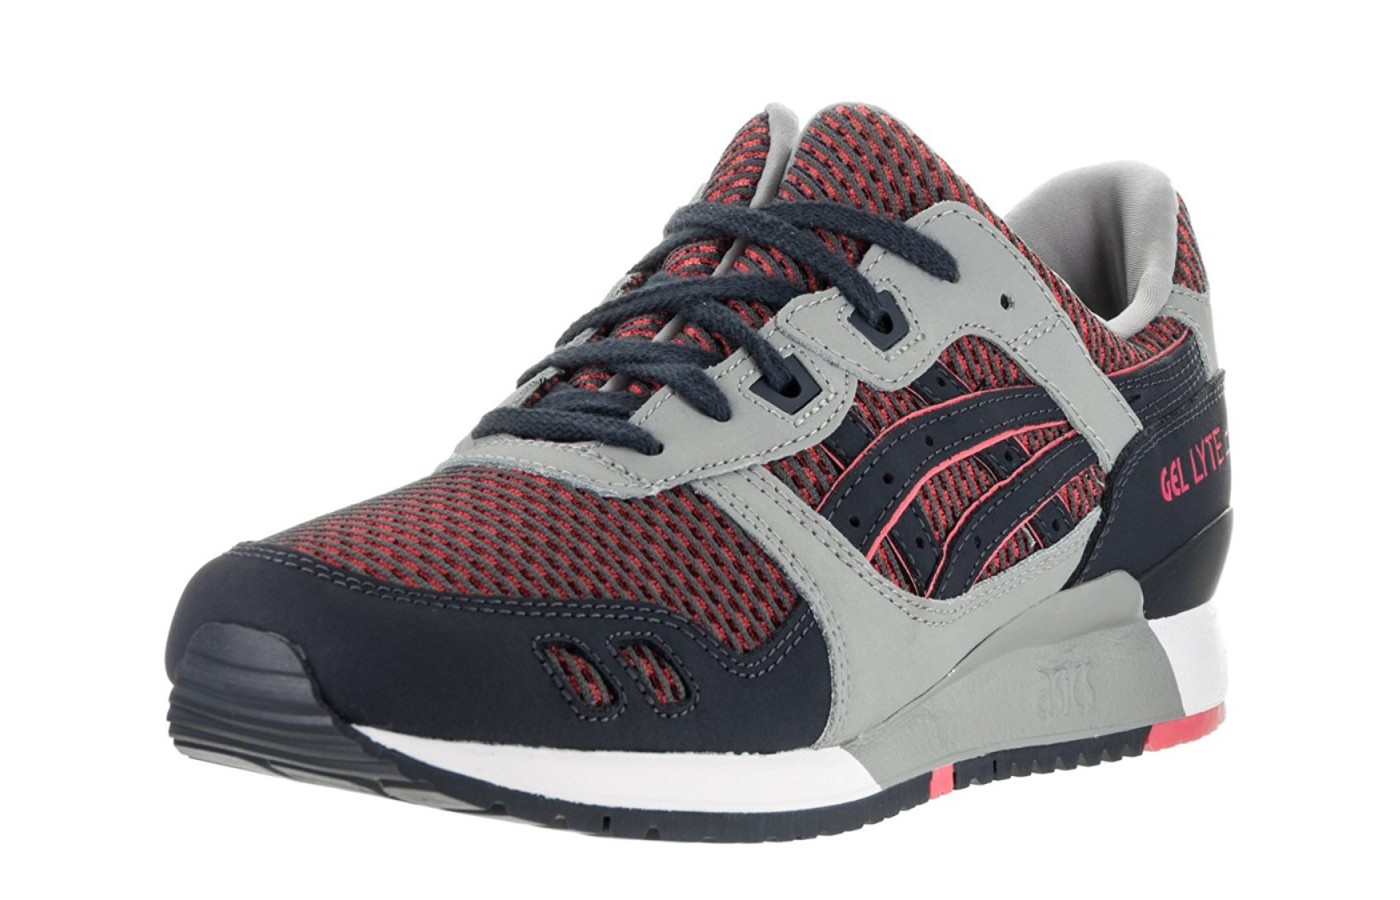 angled view of the Asics gel lyte III